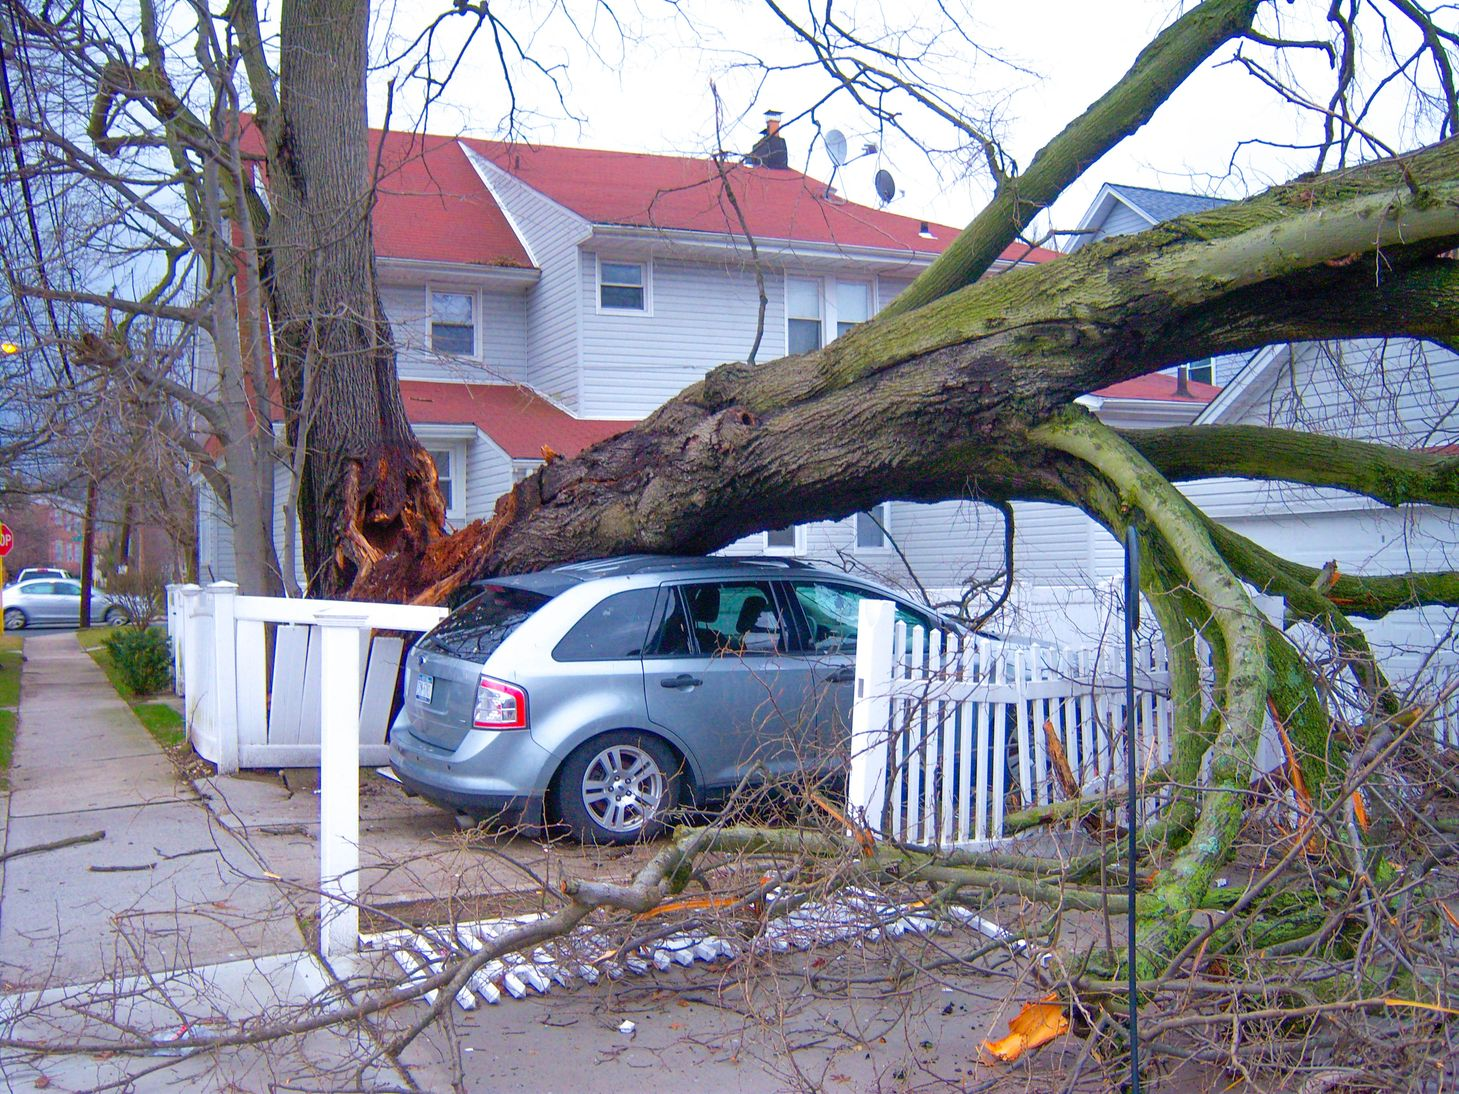 Among the benefits of an emergency fund is that it can help pay for sudden repairs to a house and vehicle damaged by a fallen tree